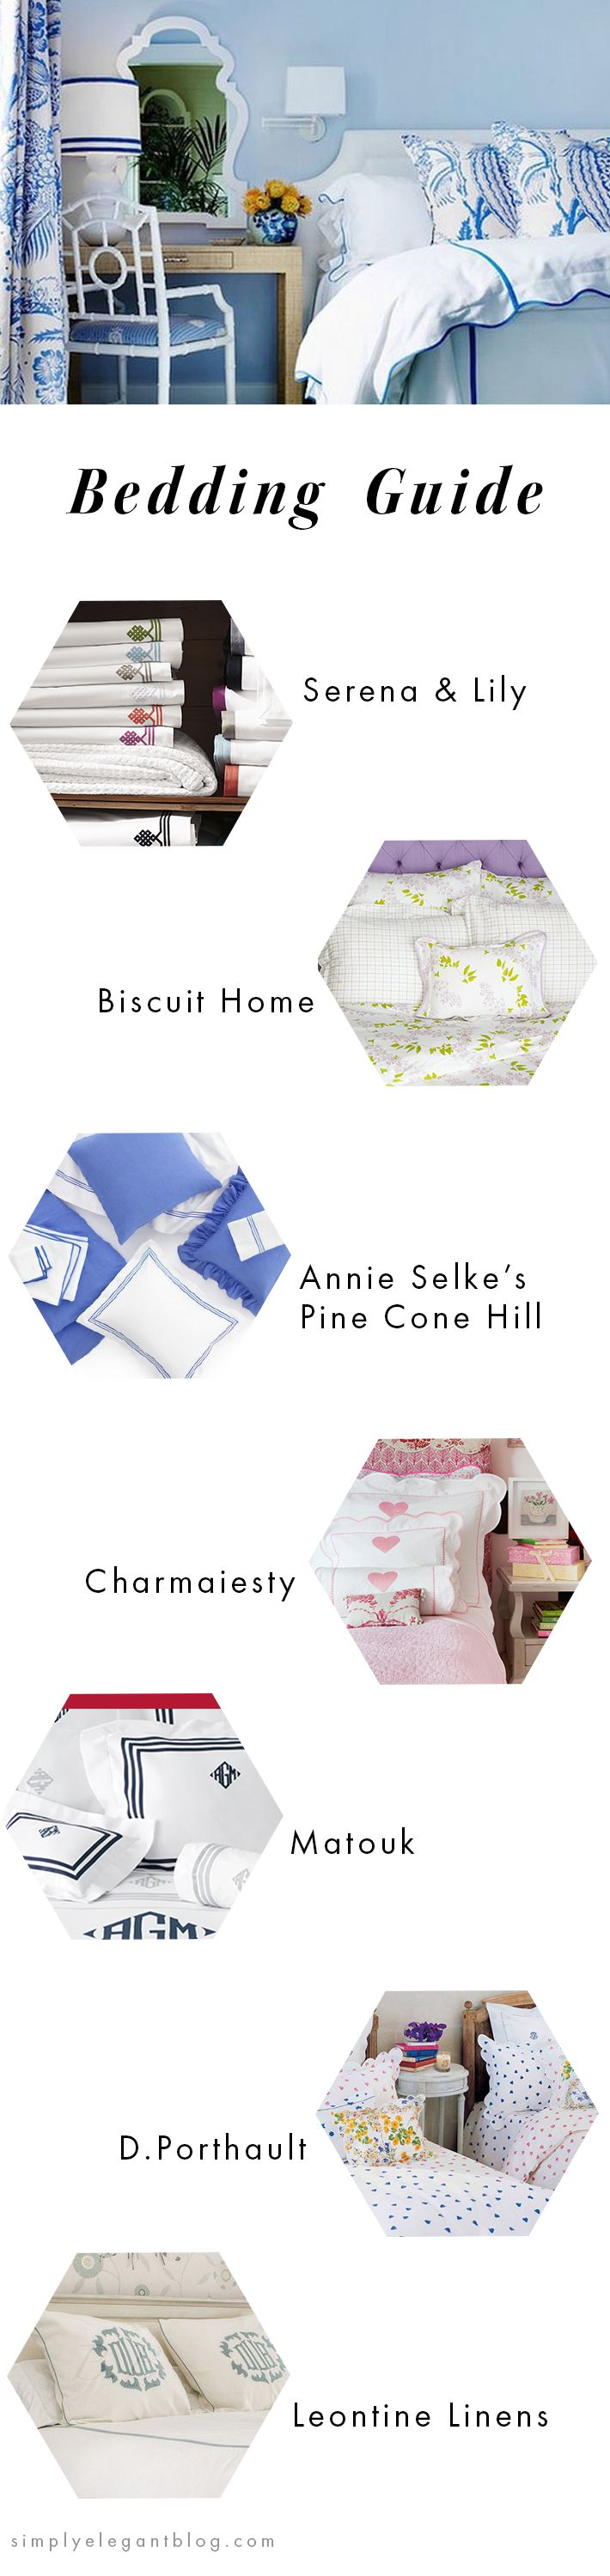 Bedding Guide - Where to Buy New Sheets. Annie Selke, Biscuit Home, Serena & Lily, Charmaiesty, Matouk, D.Porthault, Leontine Linens.